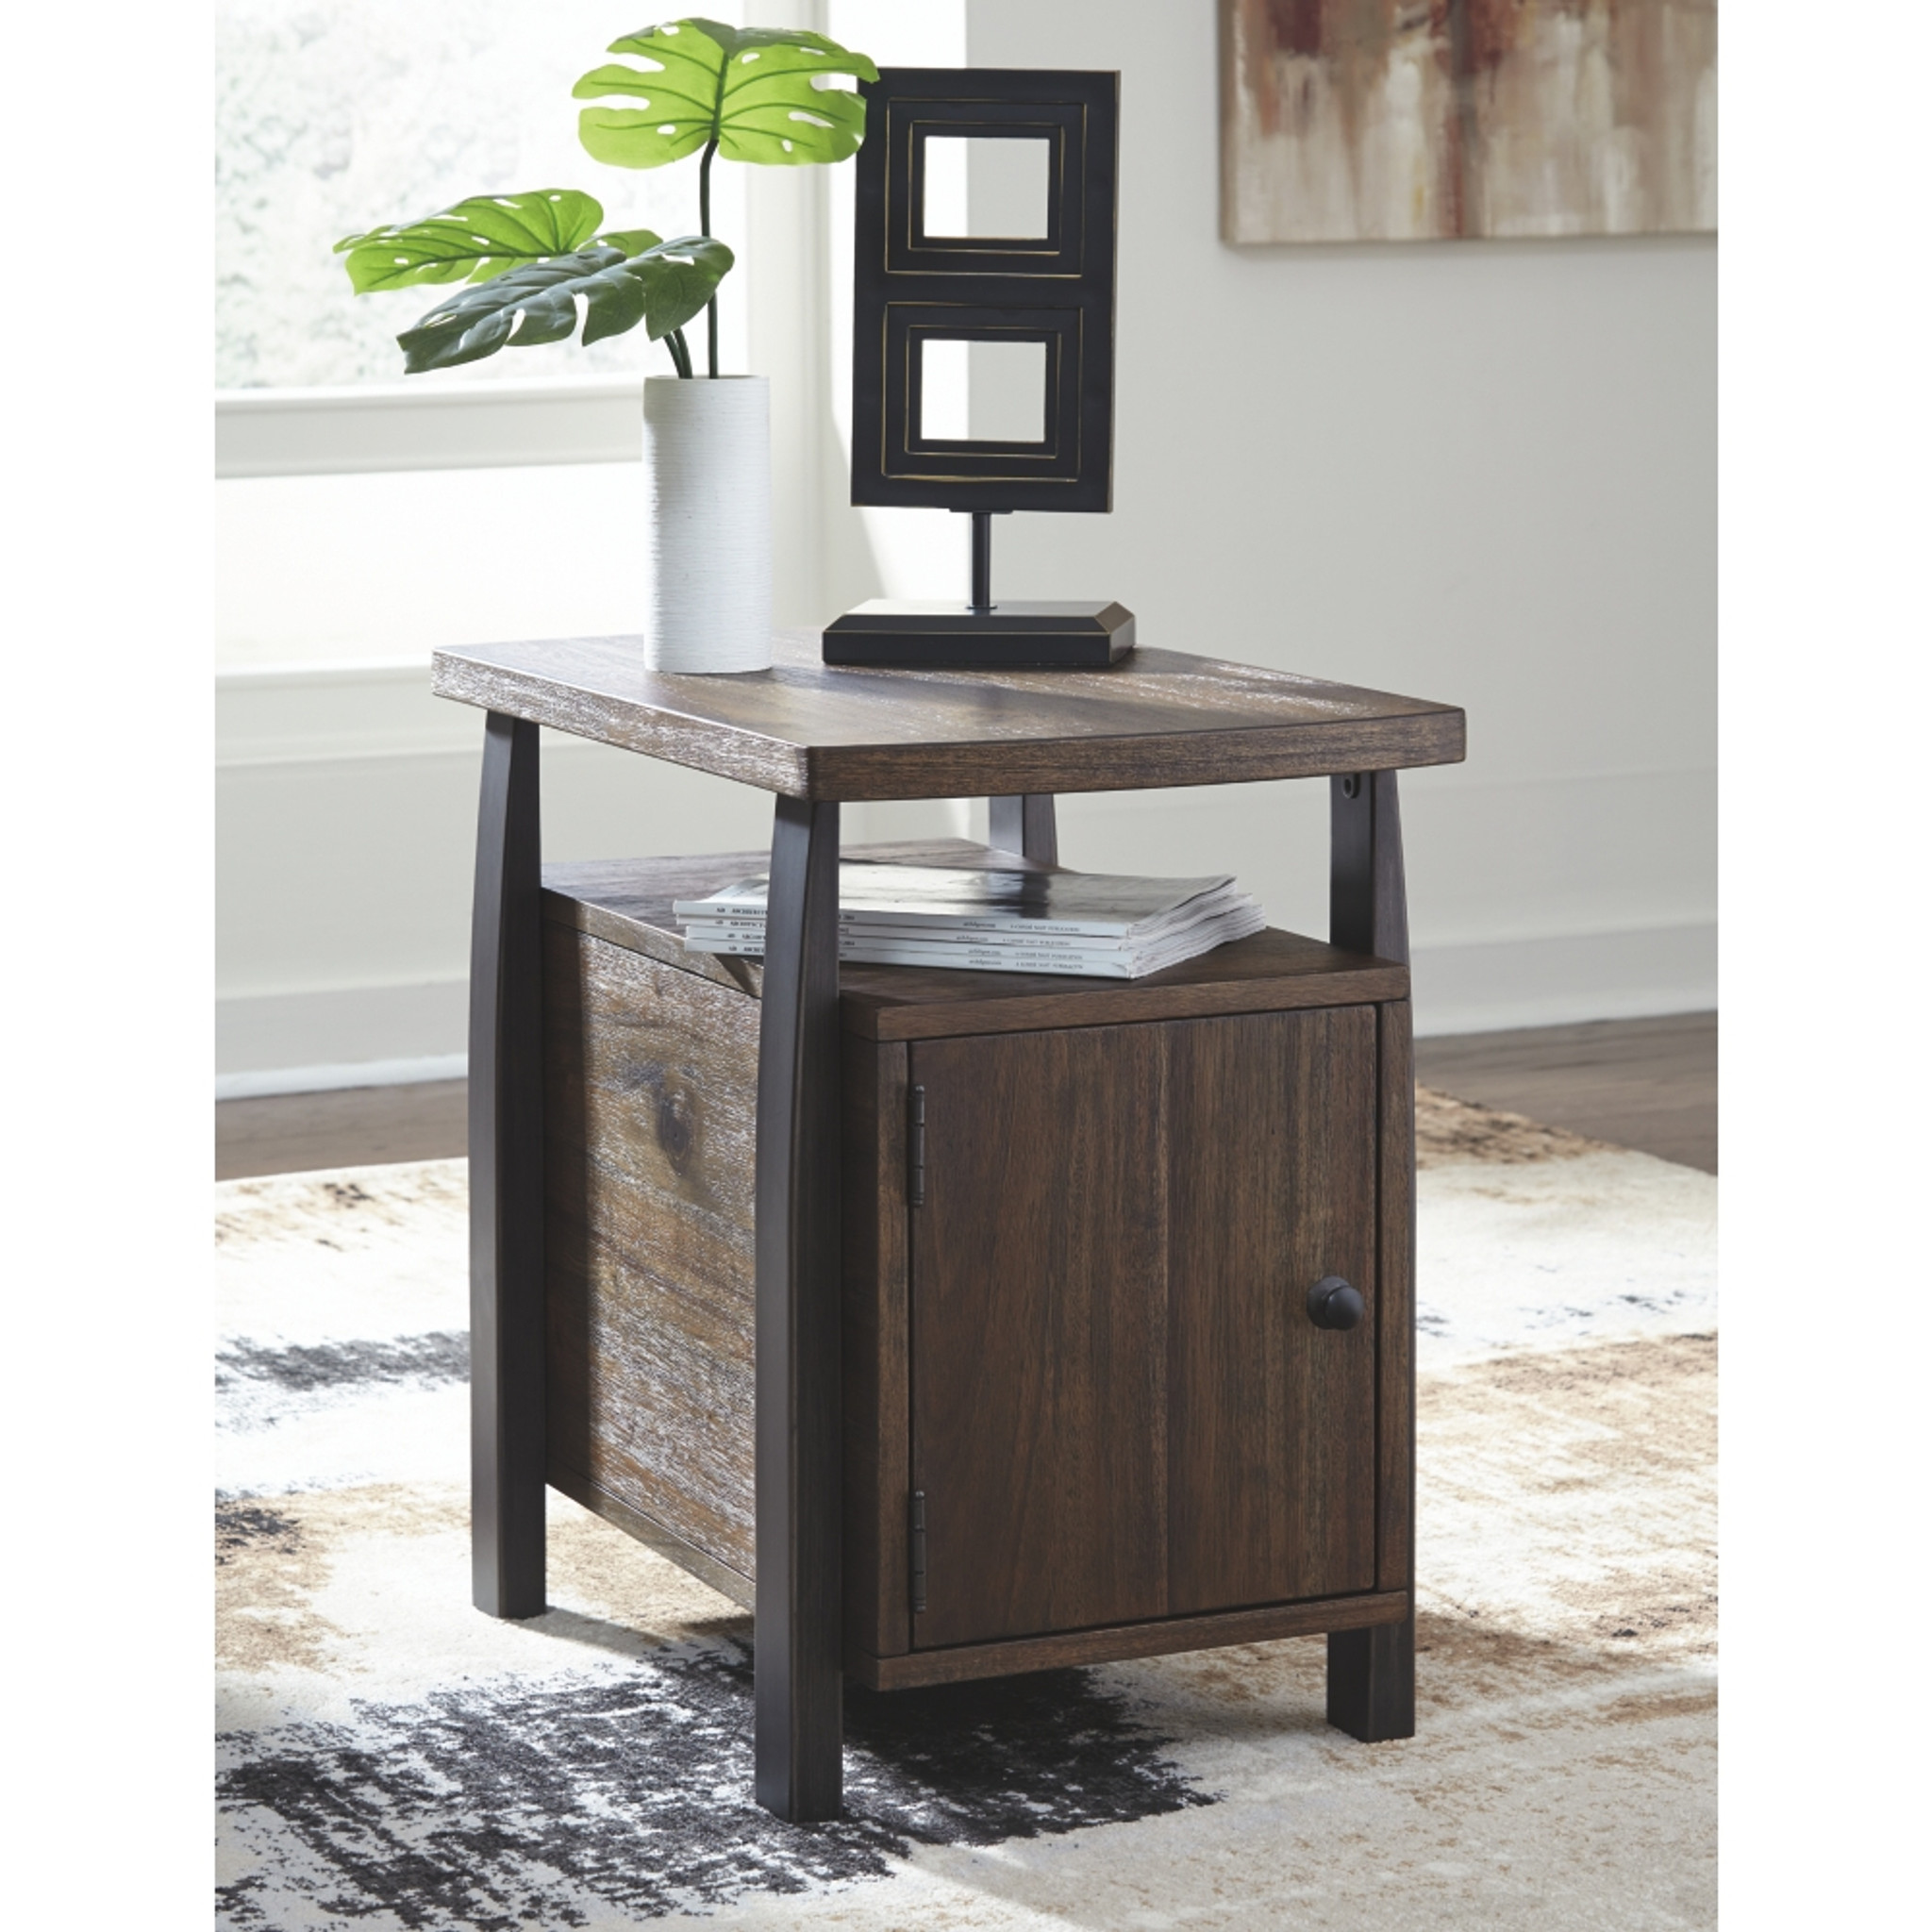 Vailbry Brown Chair Side End Table By Ashley Furniture